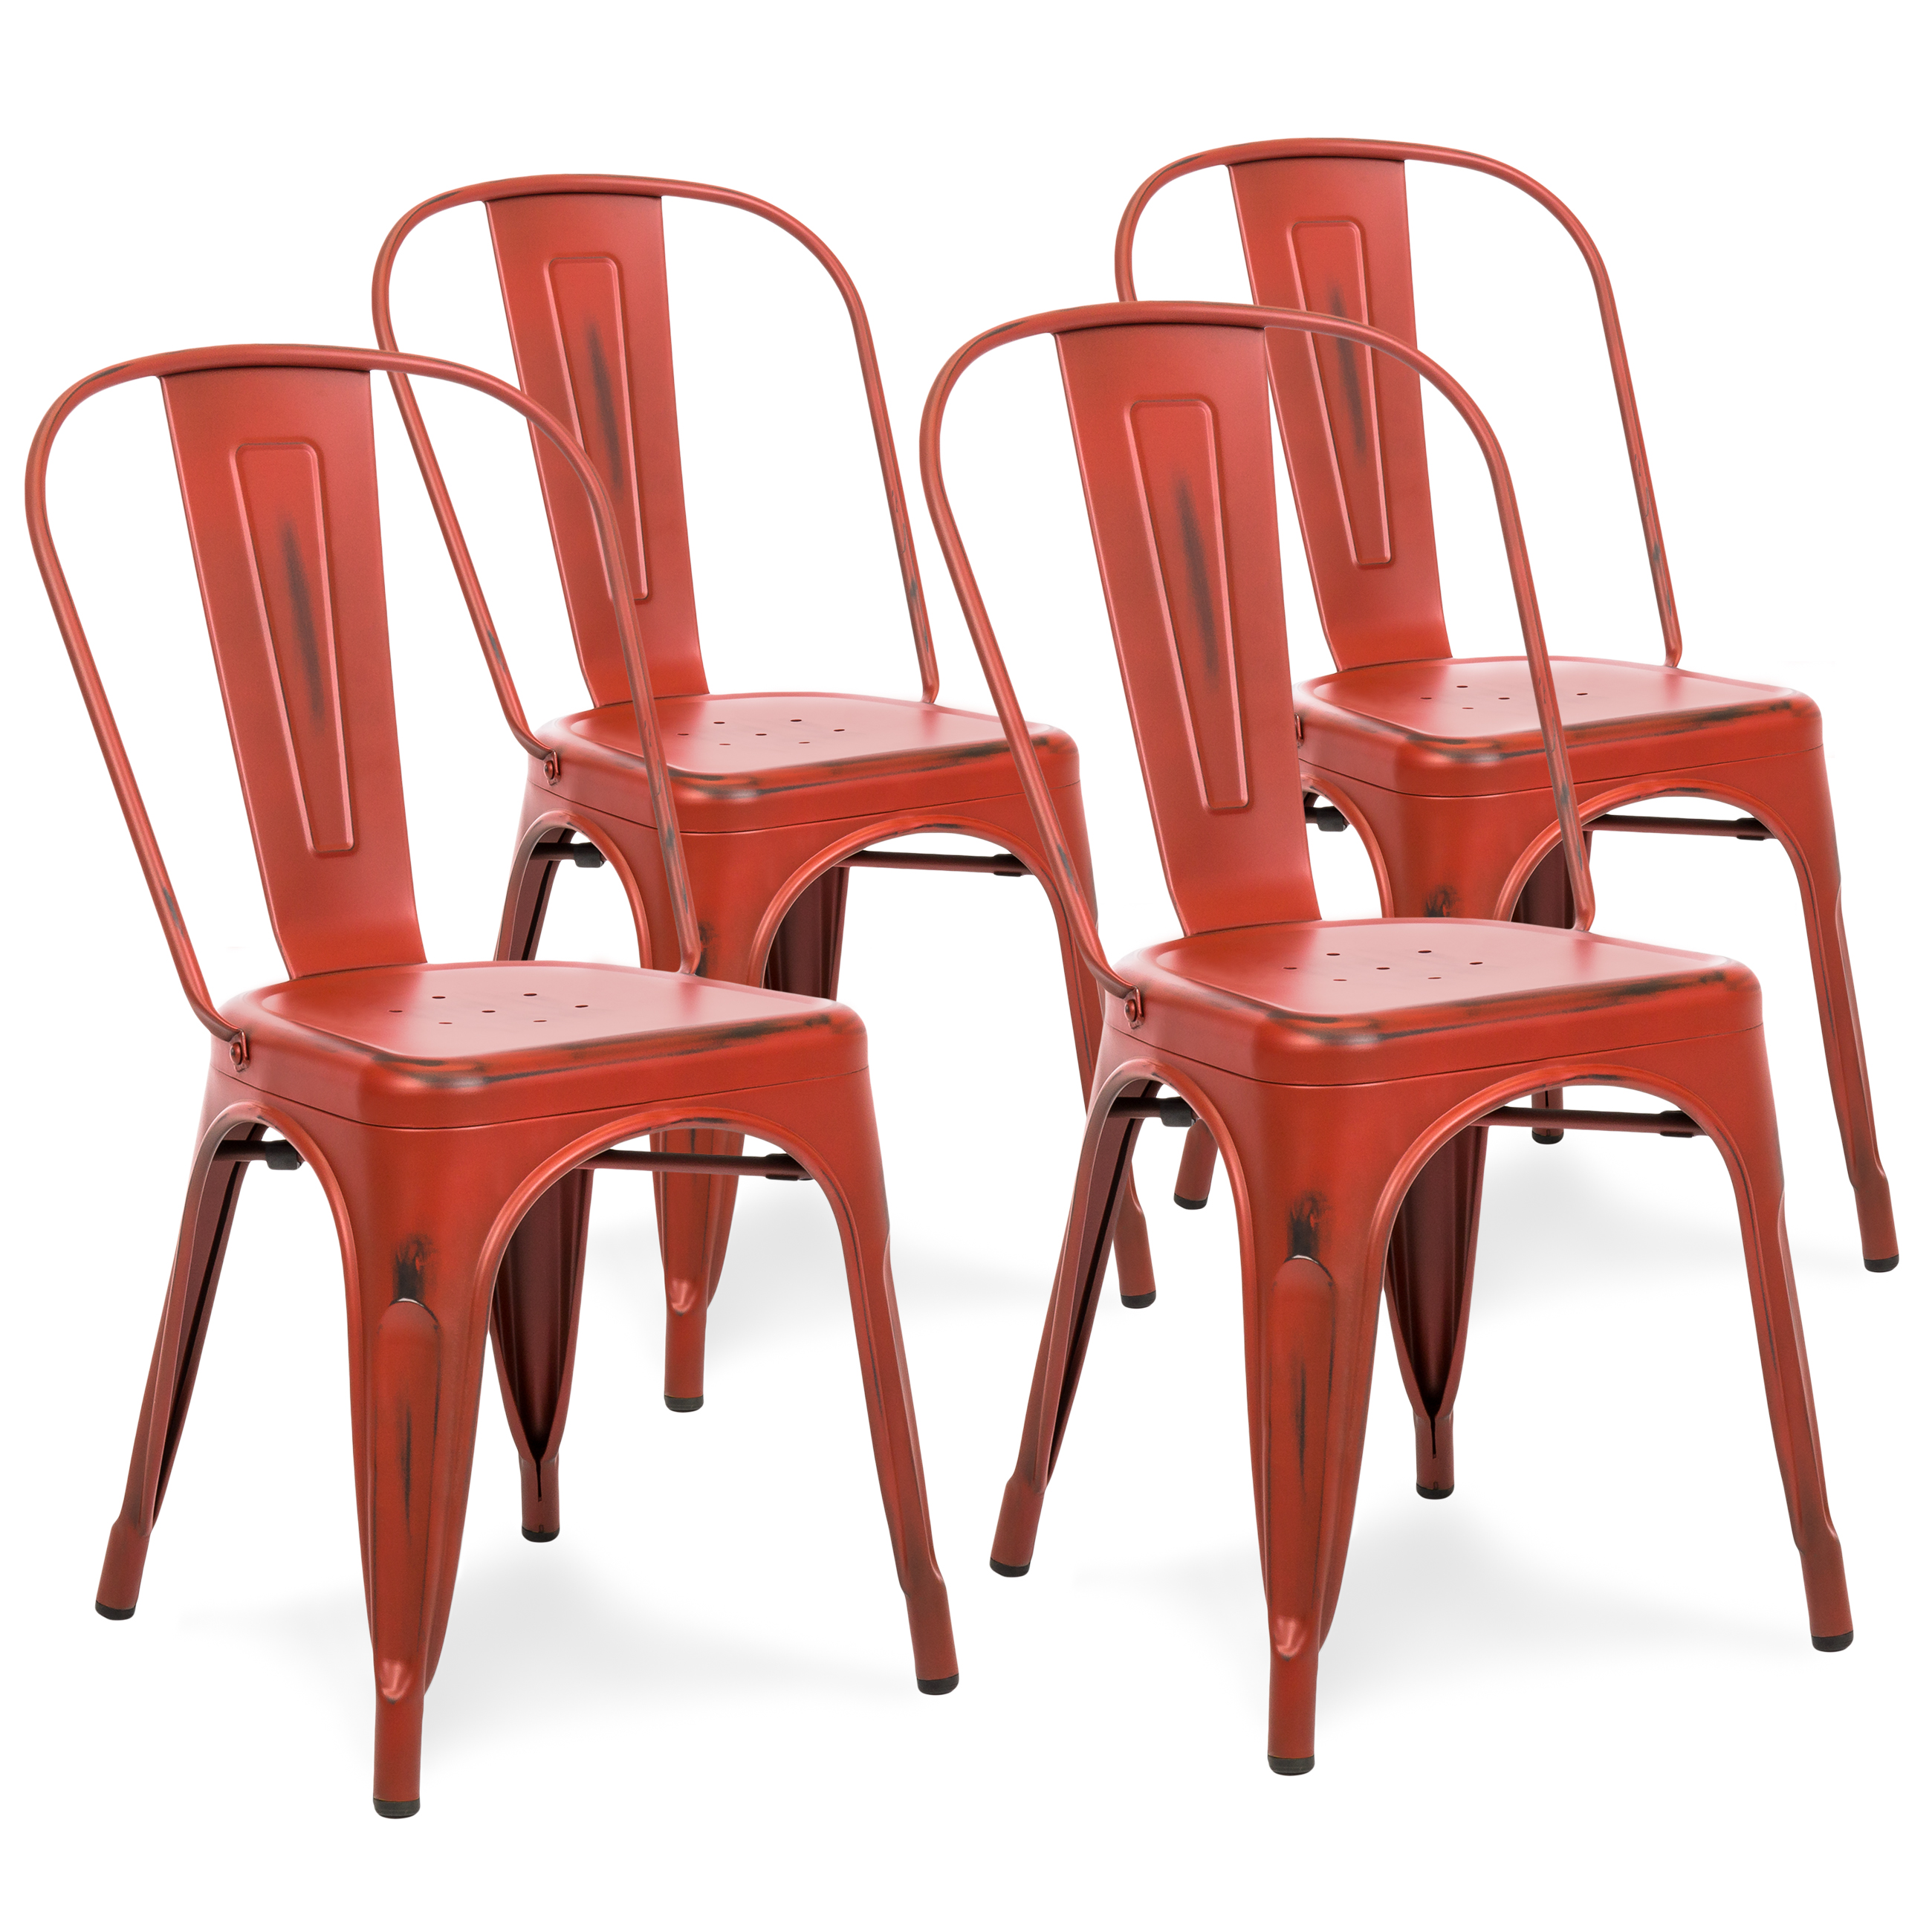 Best Choice Products Set of 4 Distressed Industrial Metal Dining Side Chairs (Red)